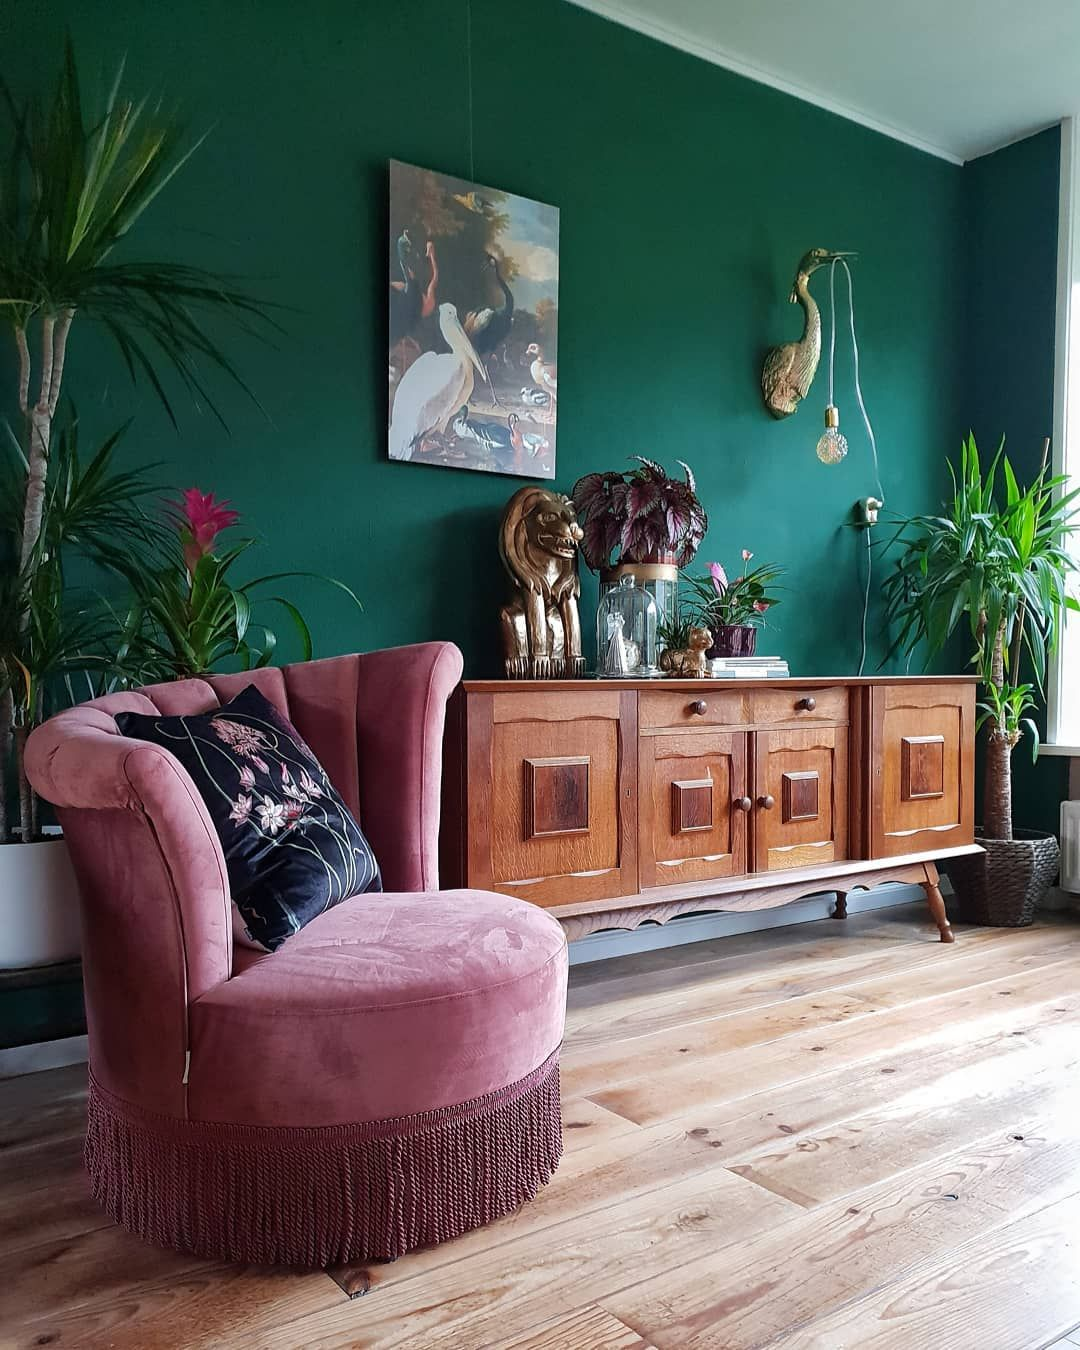 Woonkamer Living Room Eclectic Vintage Green Pink Bold Interior Design Velvet Fauteuil Chair Pla Dark Living Rooms Decor House Interior